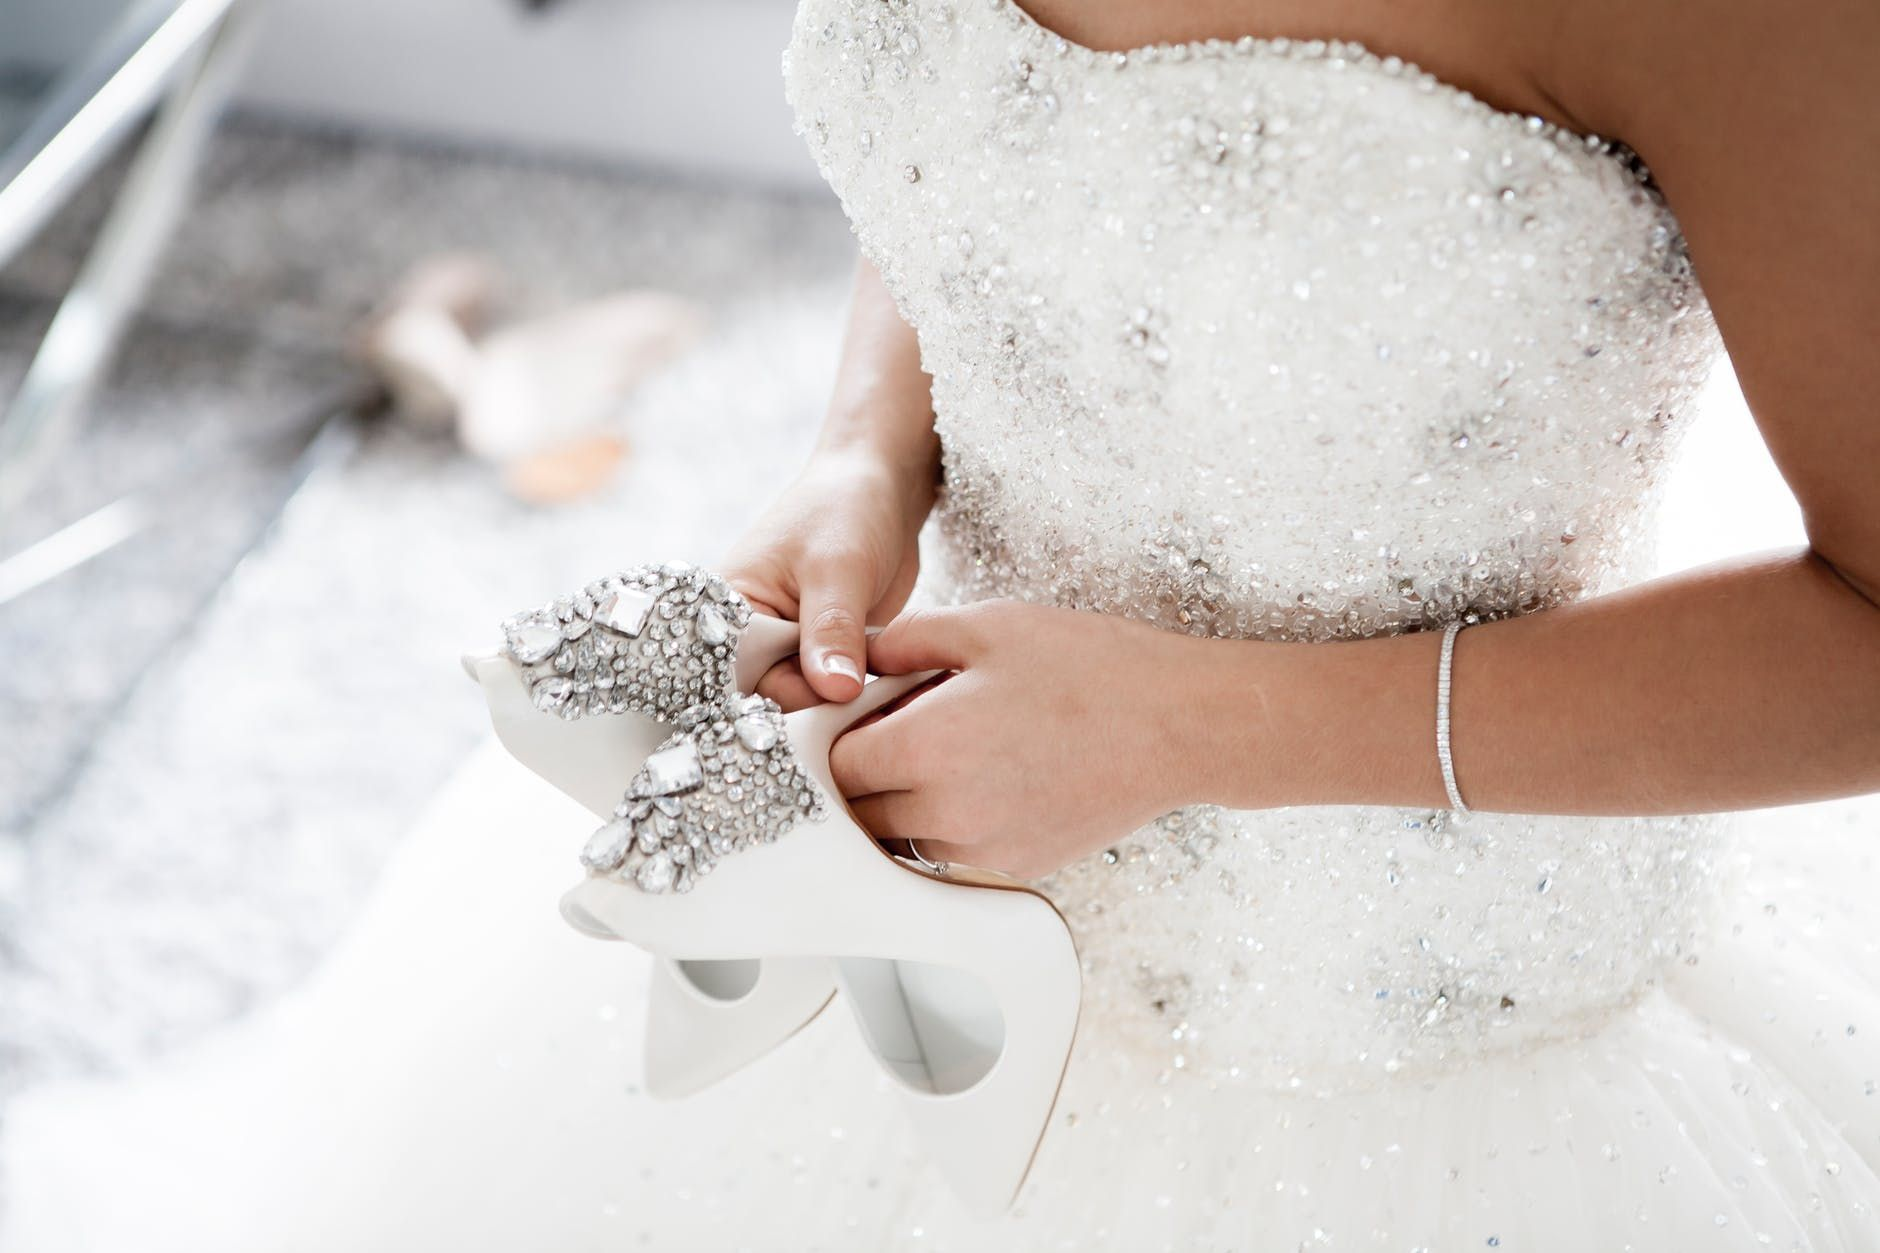 A bride in her wedding dress holding her shoes